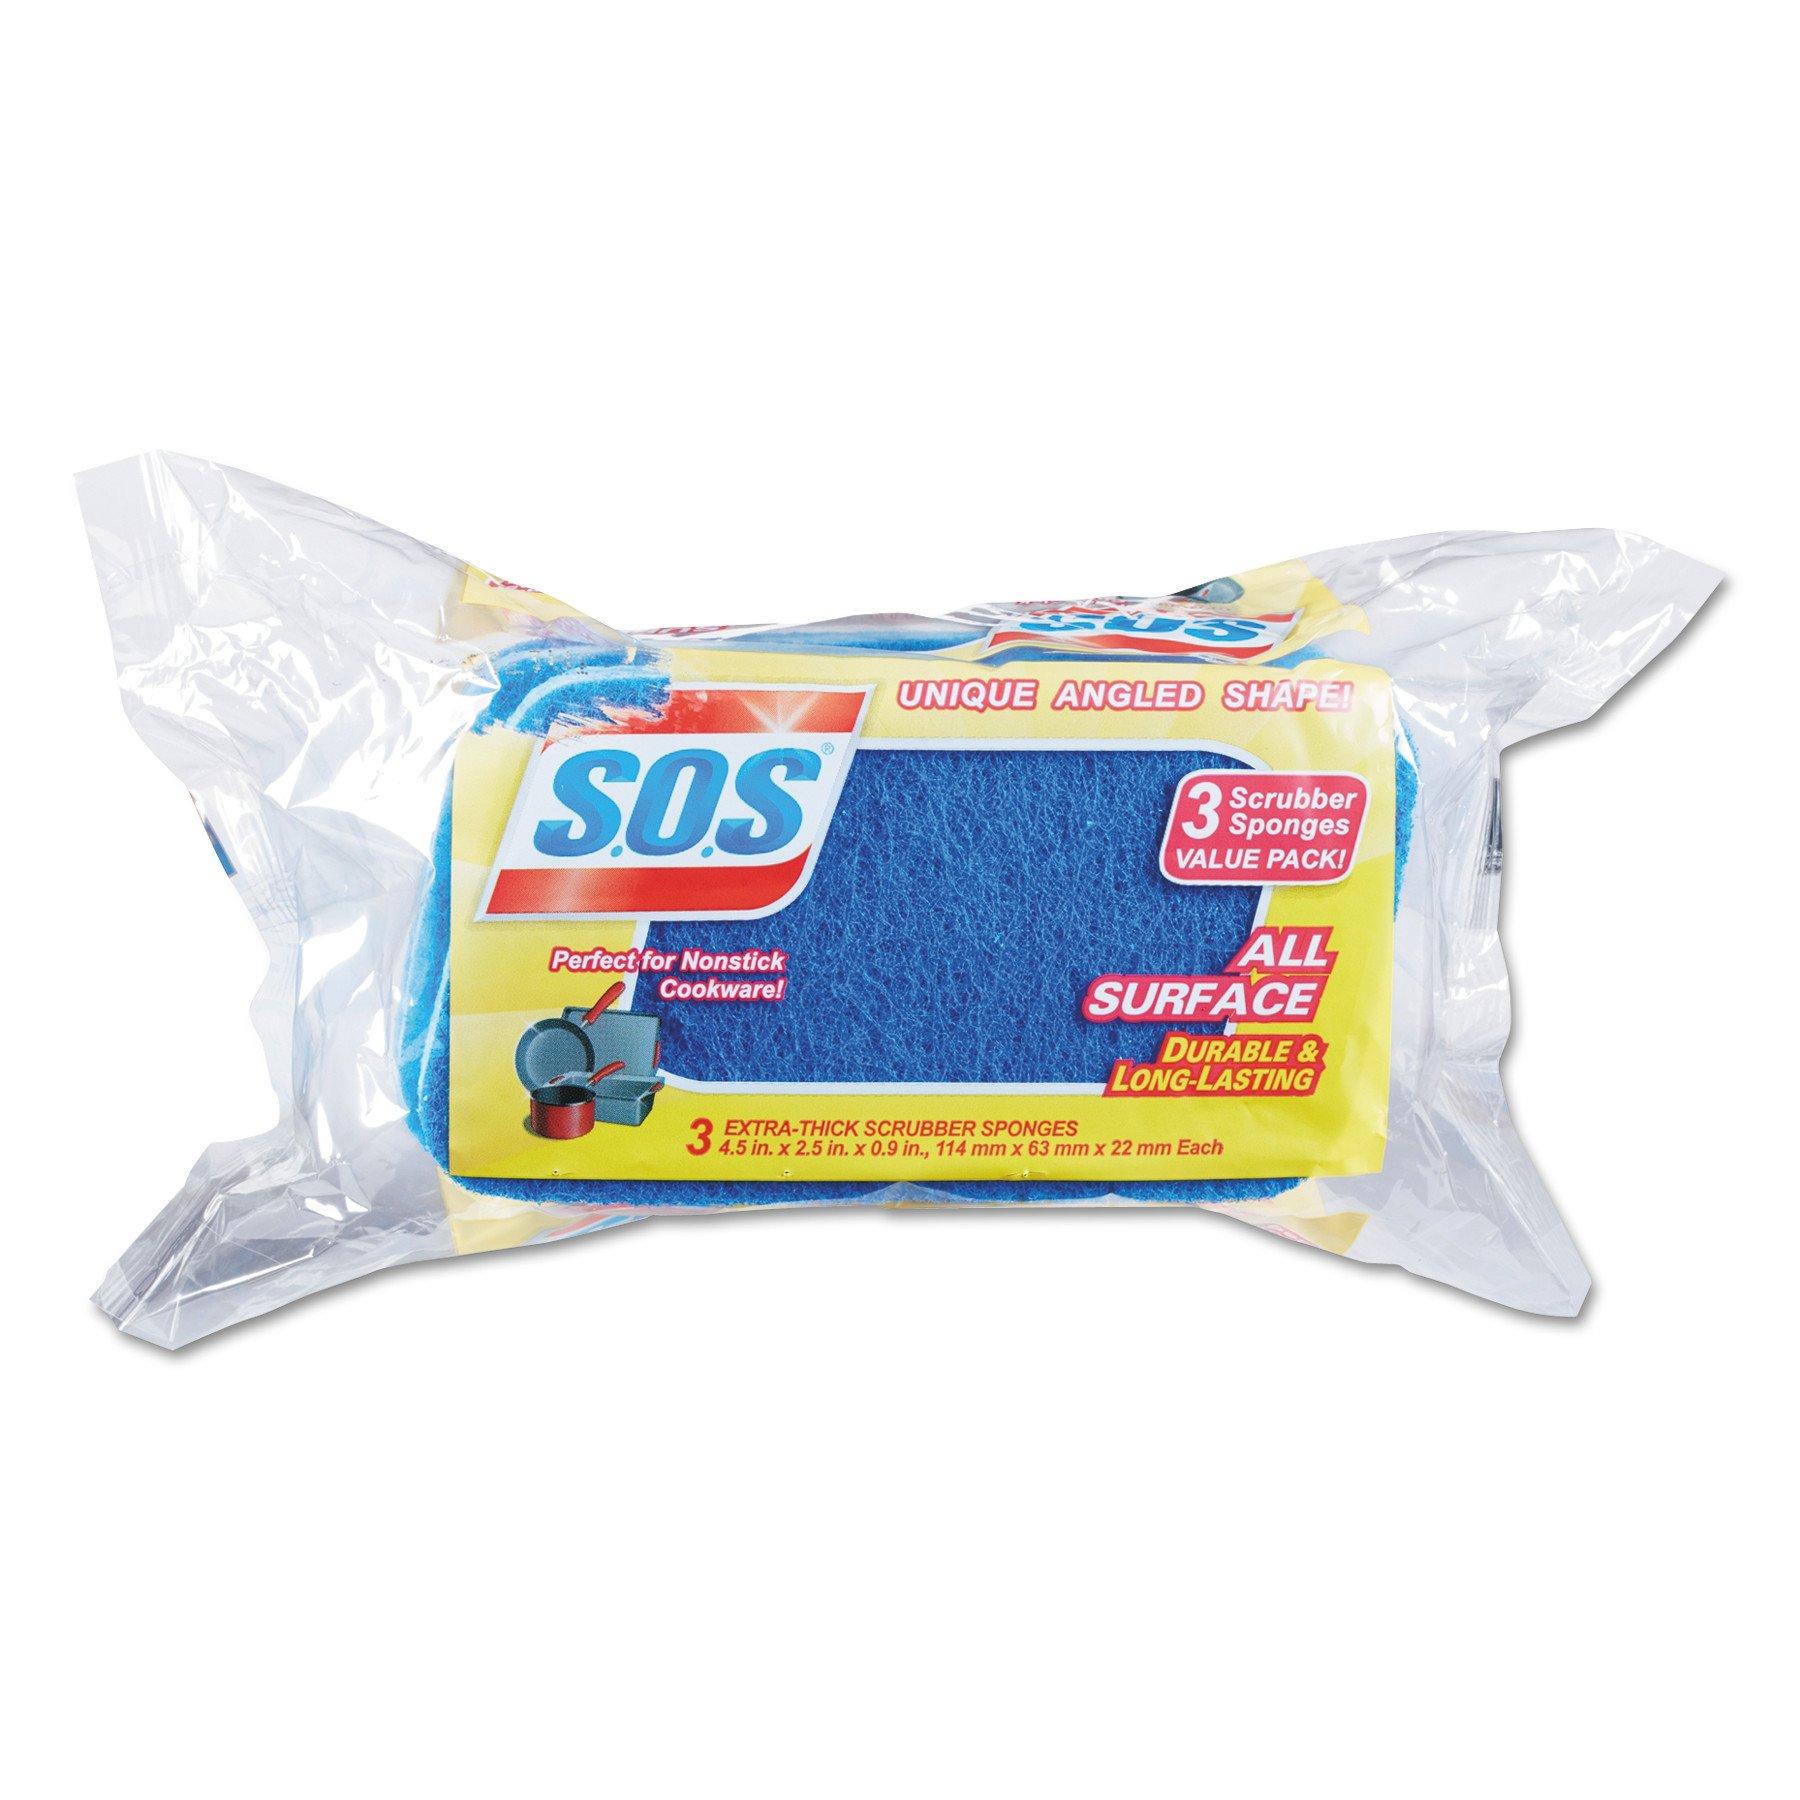 S.O.S. 91028CT All Surface Scrubber Sponge, 2 1/2 x 4 1/2, 0.9'' Thick, Blue, Pack of 3 (Case of 8)